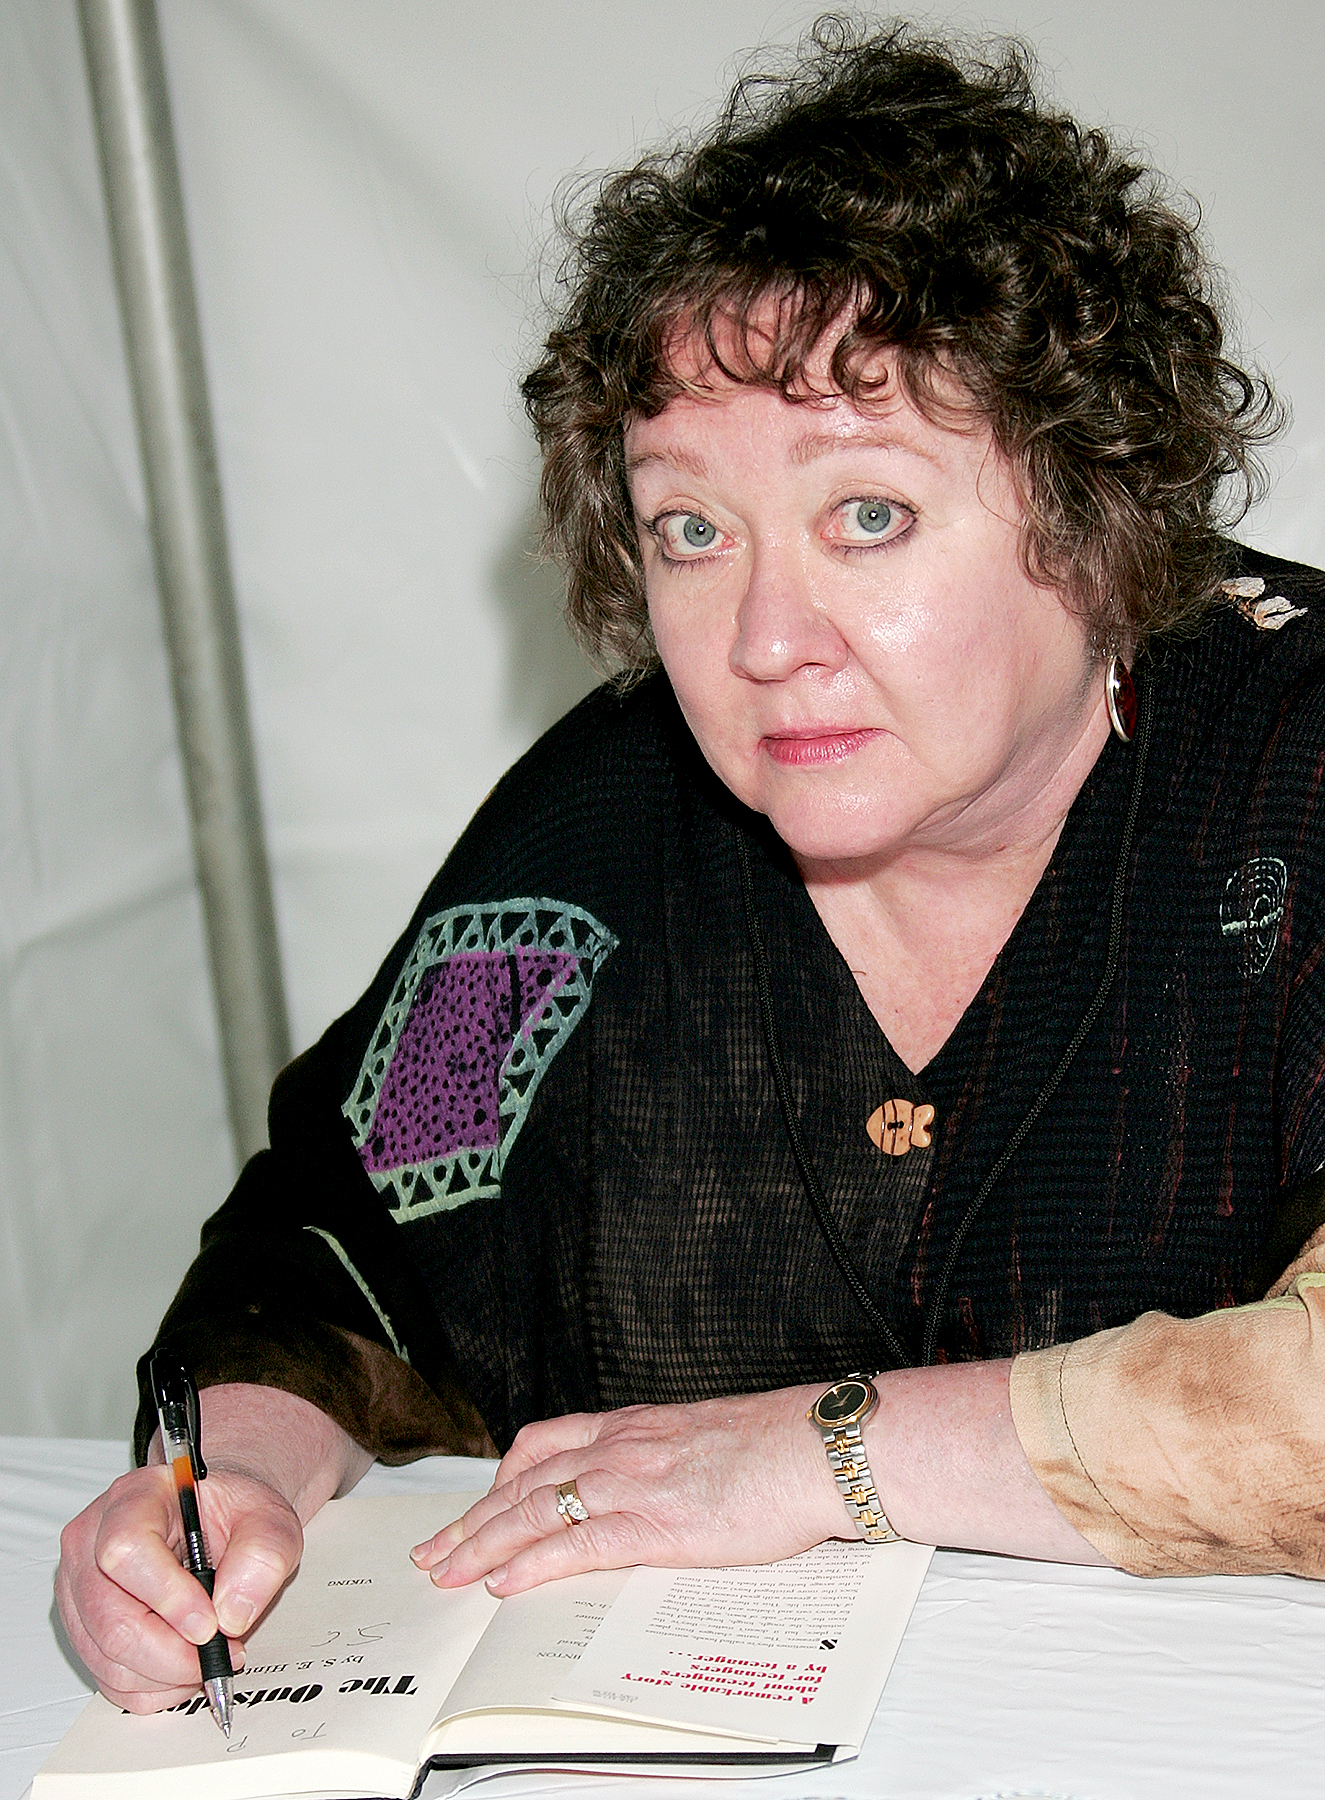 S.E. Hinton attends the 14th annual Los Angeles Times Festival of Books - Day 2 at UCLA on April 26, 2009 in Los Angeles, California.